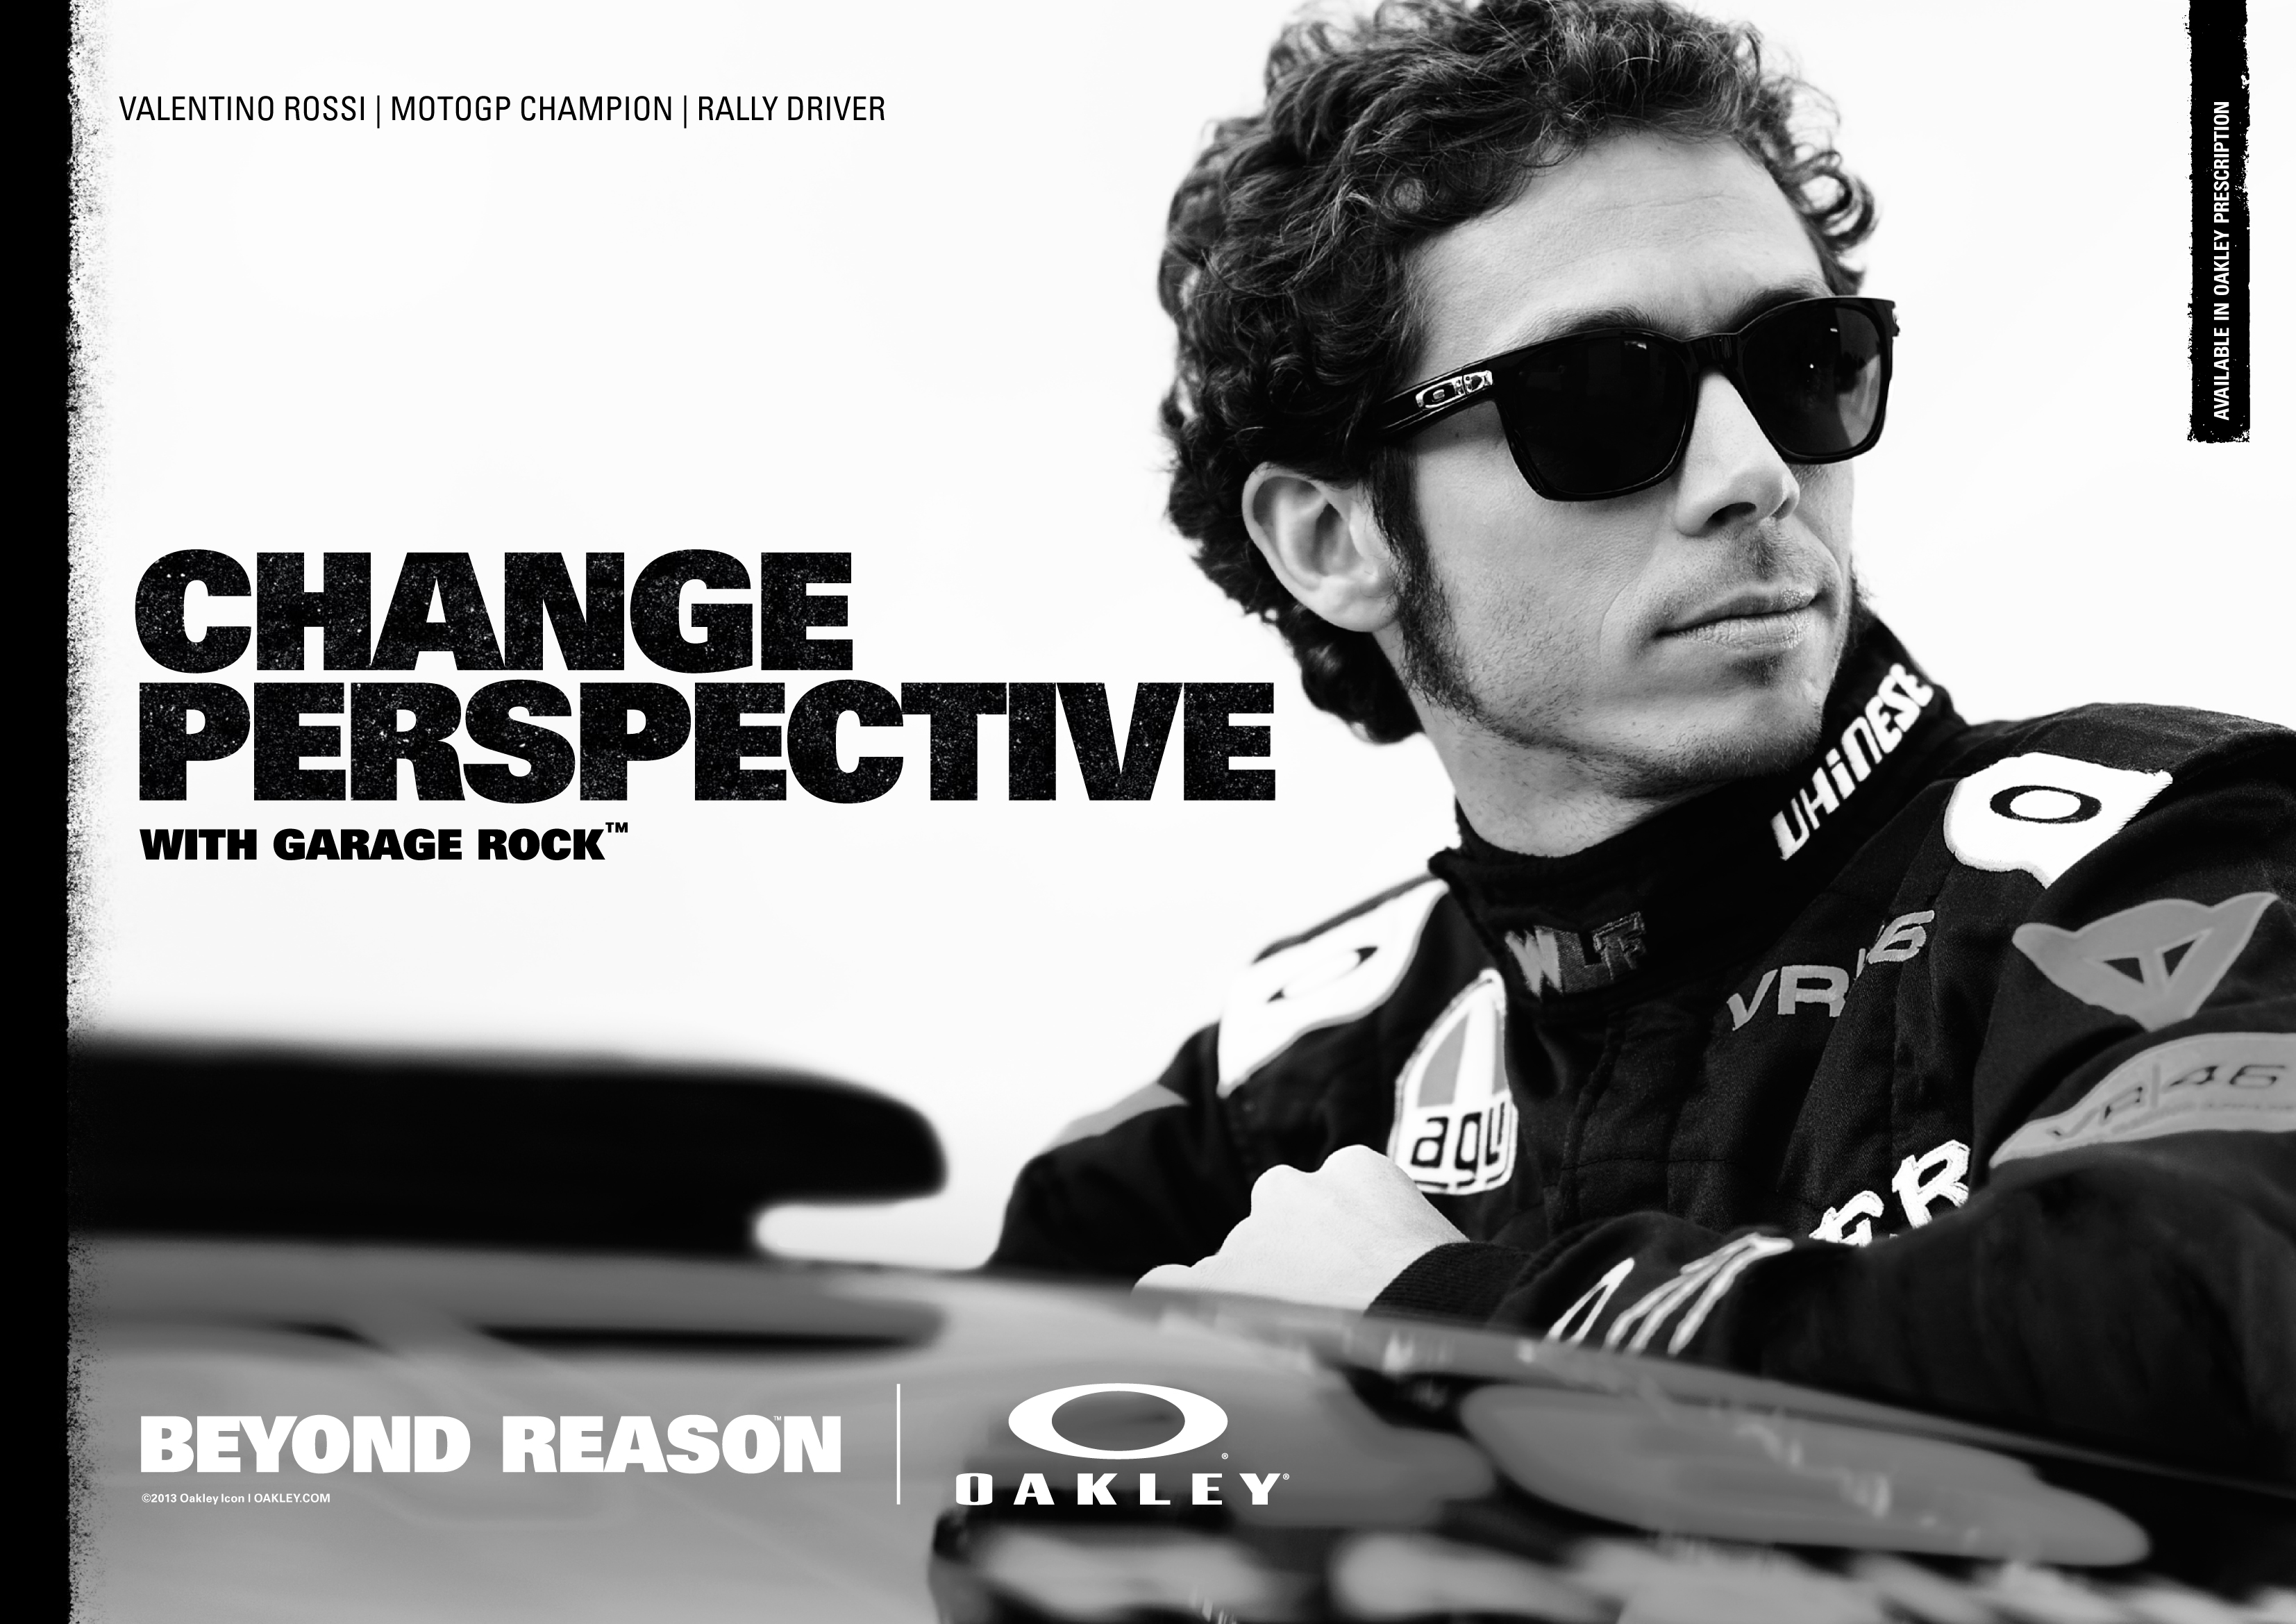 a391da2fe1d OAKLEY INVITES YOU TO CHANGE PERSPECTIVE. Wednesday 3 April 2013 PDF Print  · Valentino. MotoGP Rider. Rally Driver.